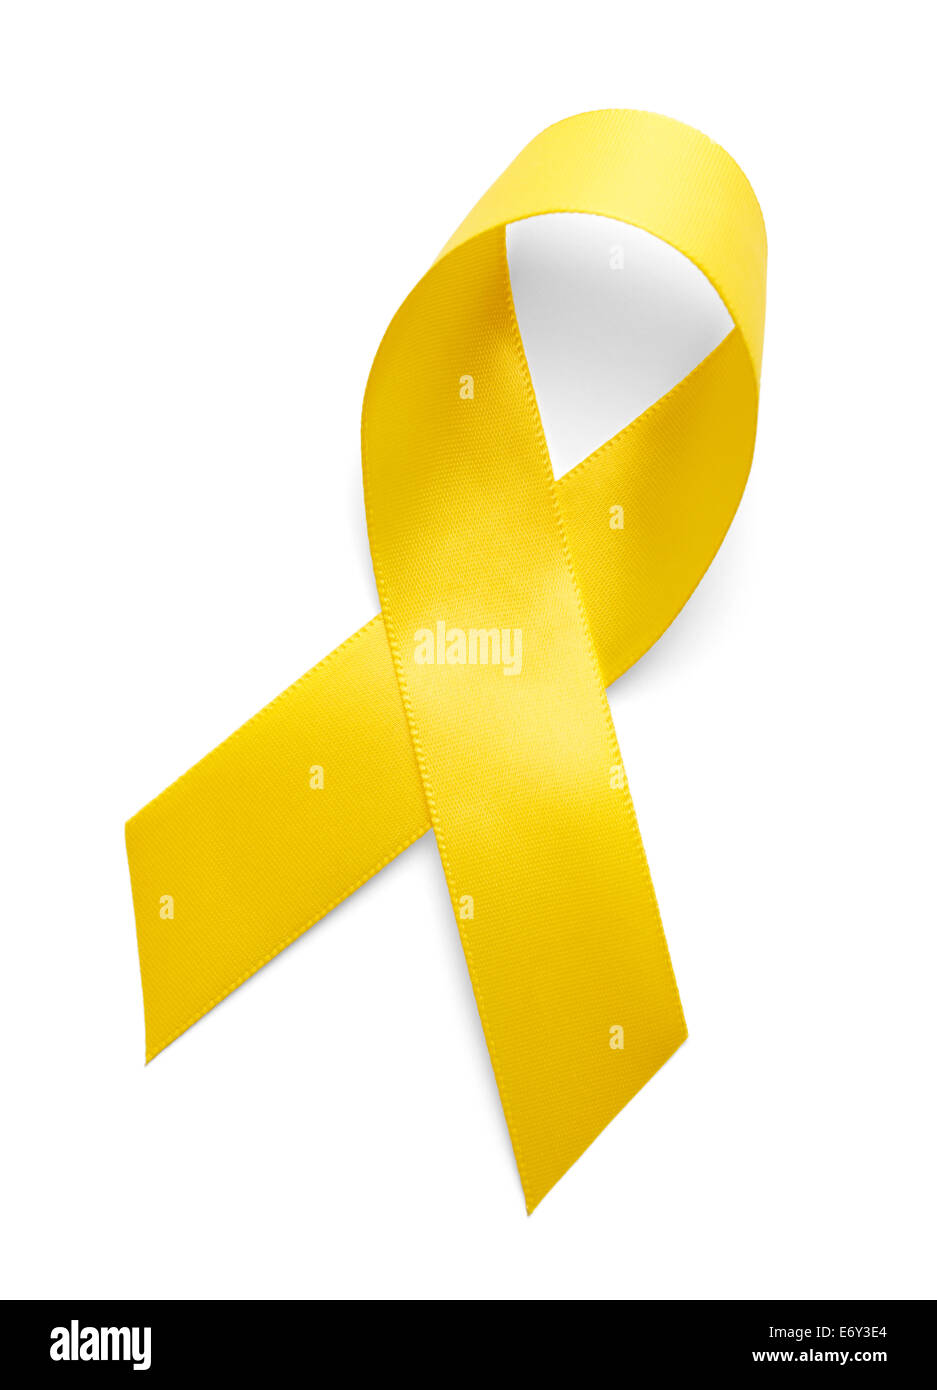 Yellow Support the Troops Ribbon Isolated on White Background. - Stock Image